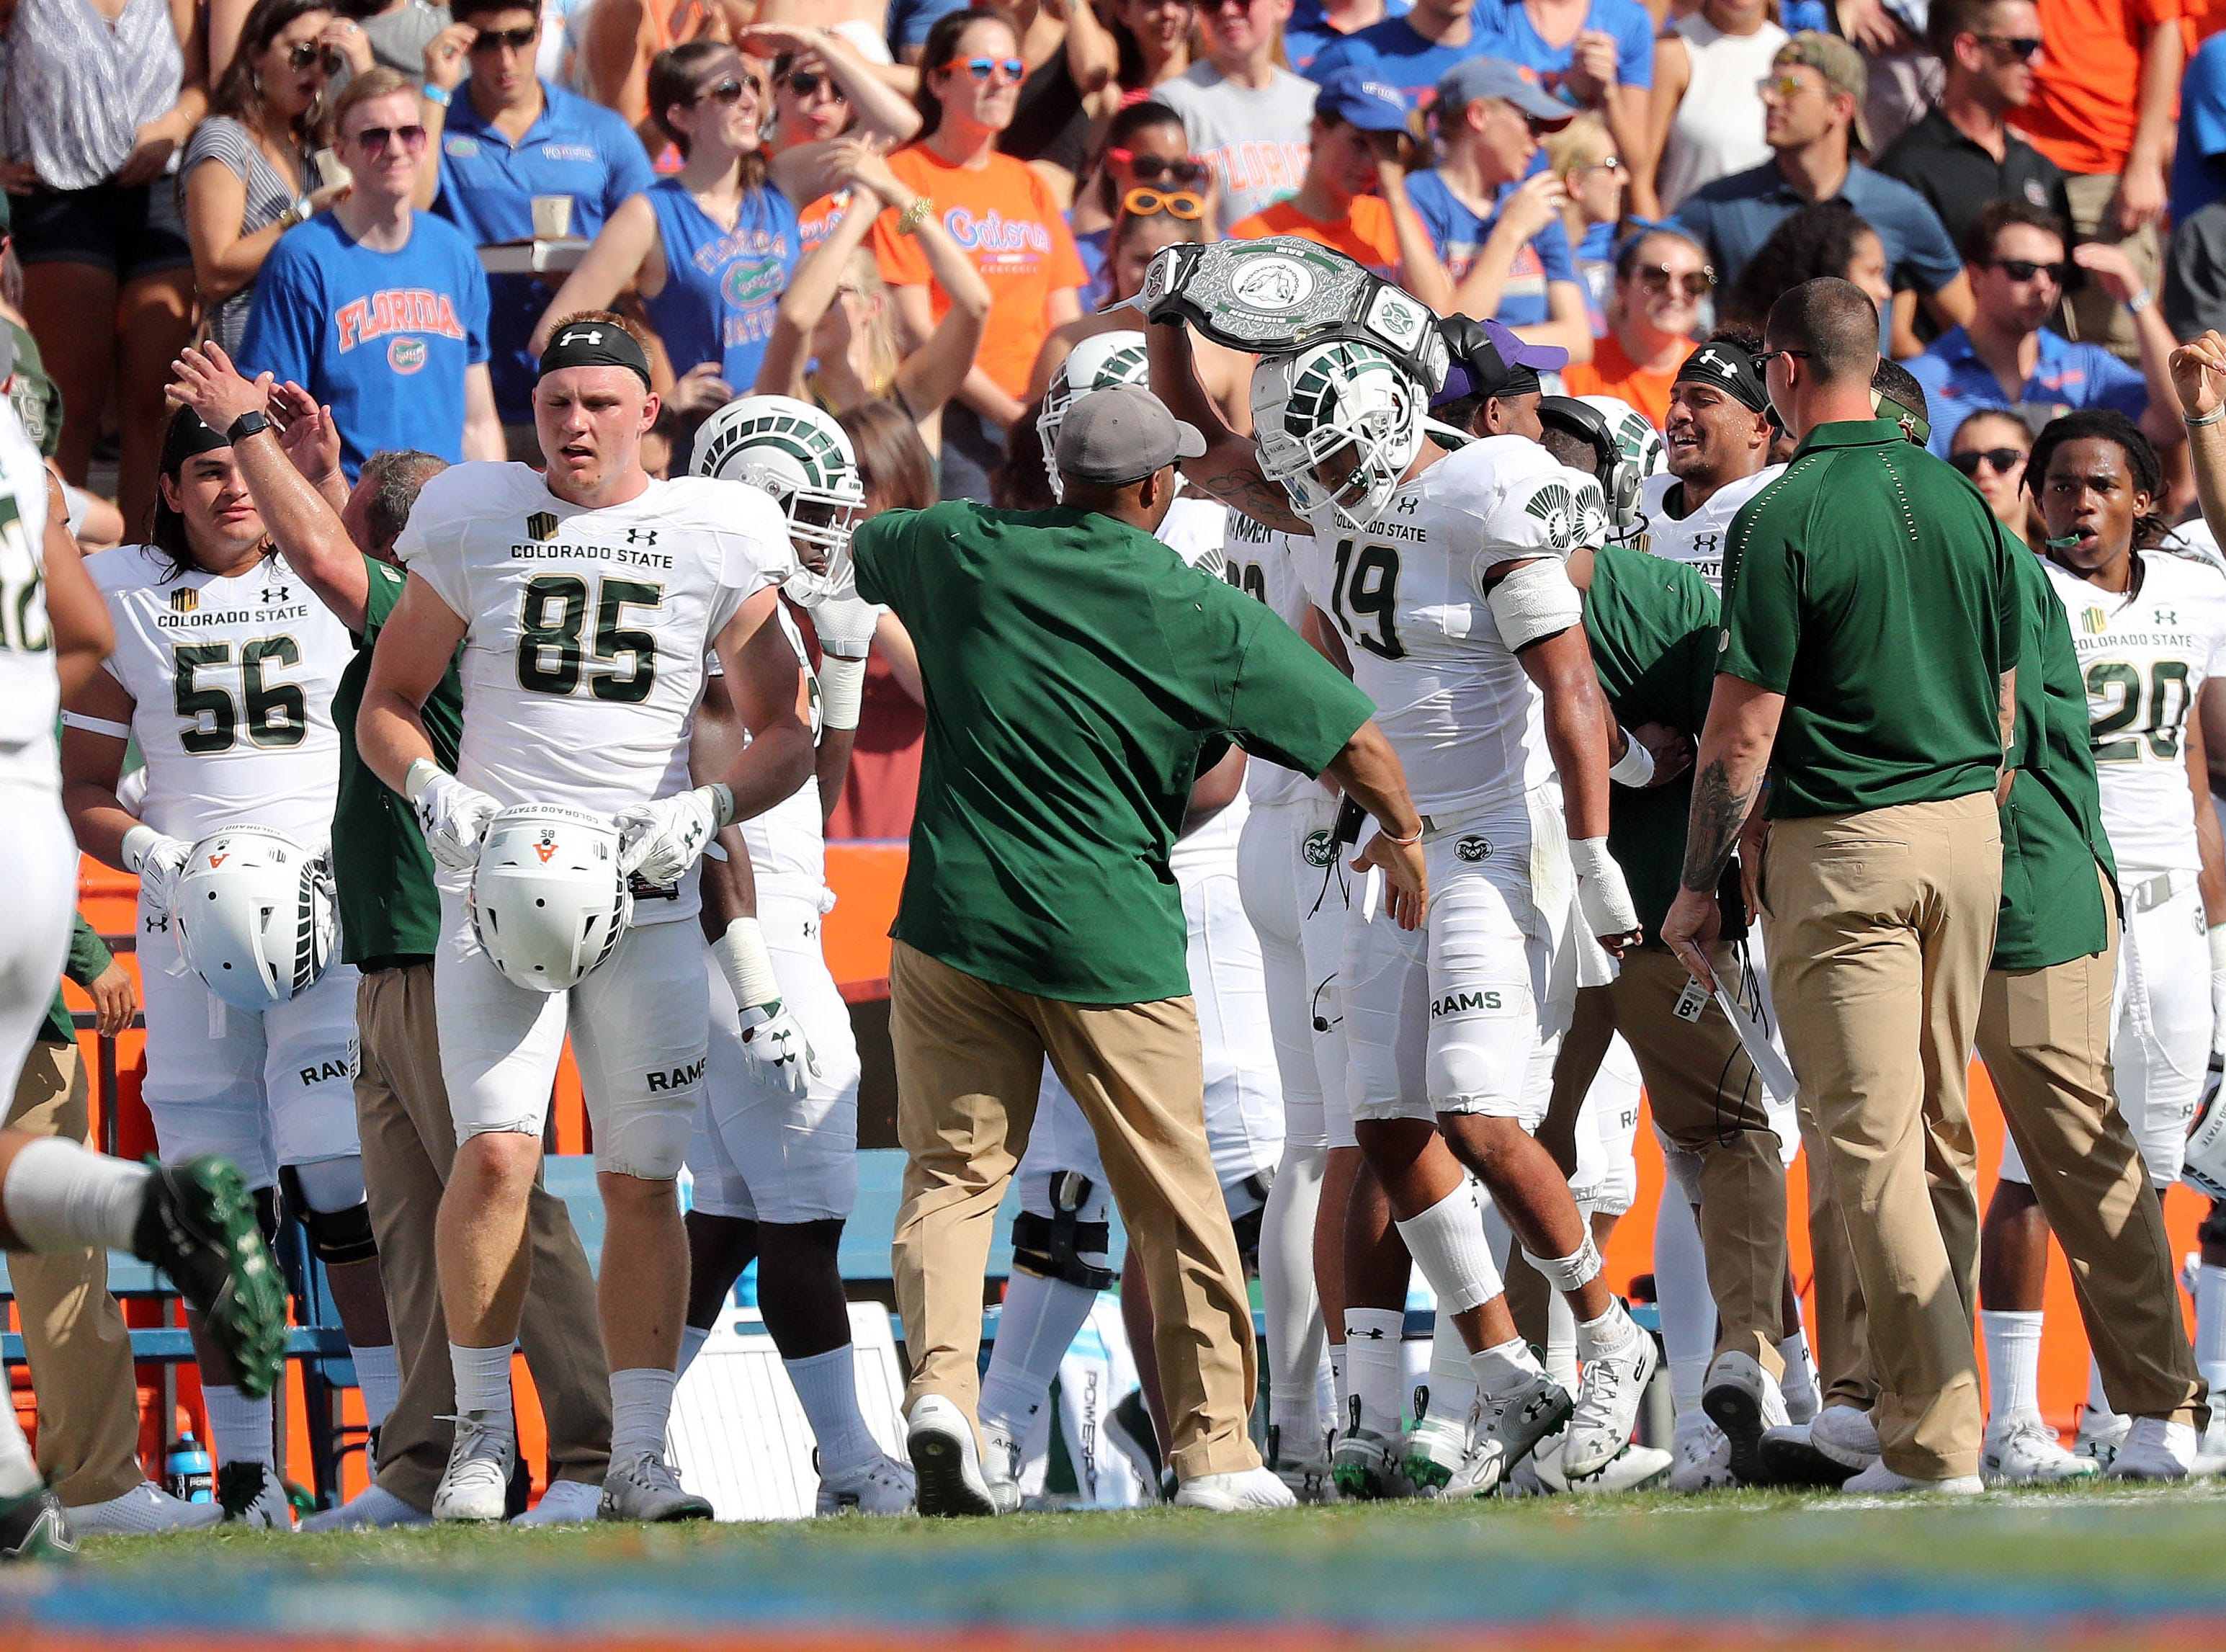 Sep 15, 2018; Gainesville, FL, USA; Colorado State Rams cornerback V.J. Banks (19) celebrates after intercepting a pass against the Florida Gators during the first quarter at Ben Hill Griffin Stadium. Mandatory Credit: Kim Klement-USA TODAY Sports